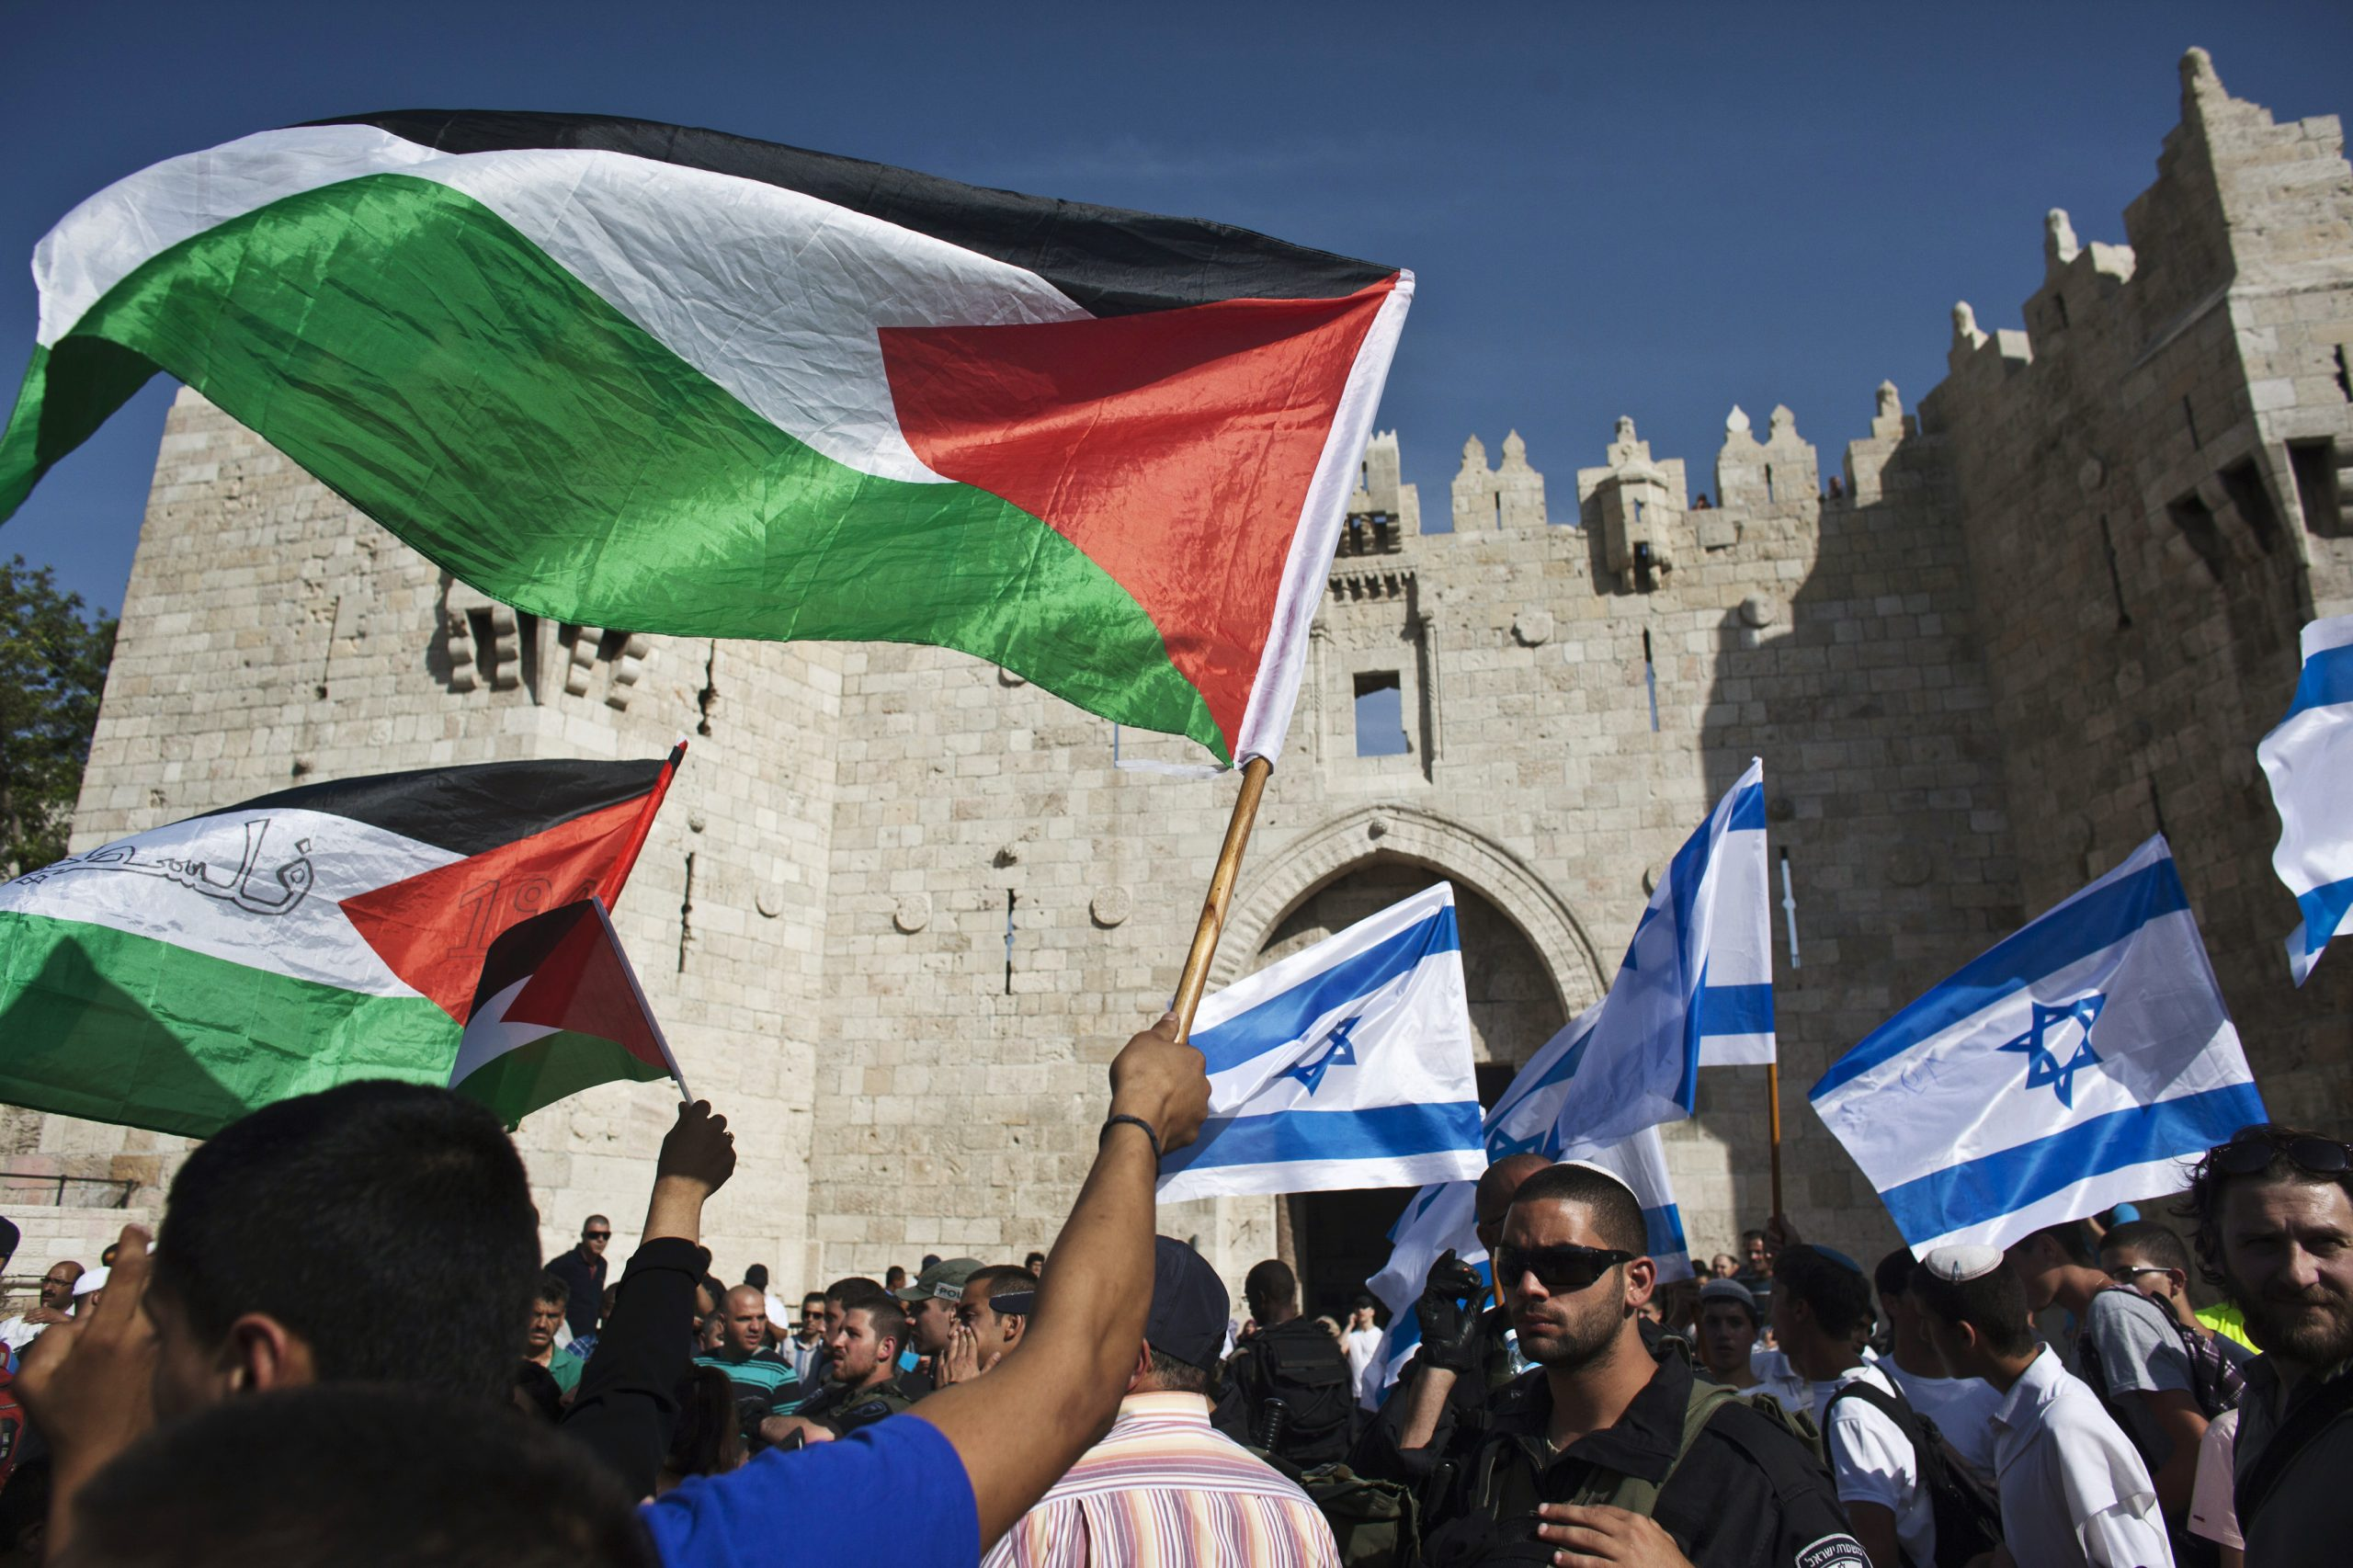 Is it a historical opportunity or a mistake? Israel assessed annexation plans